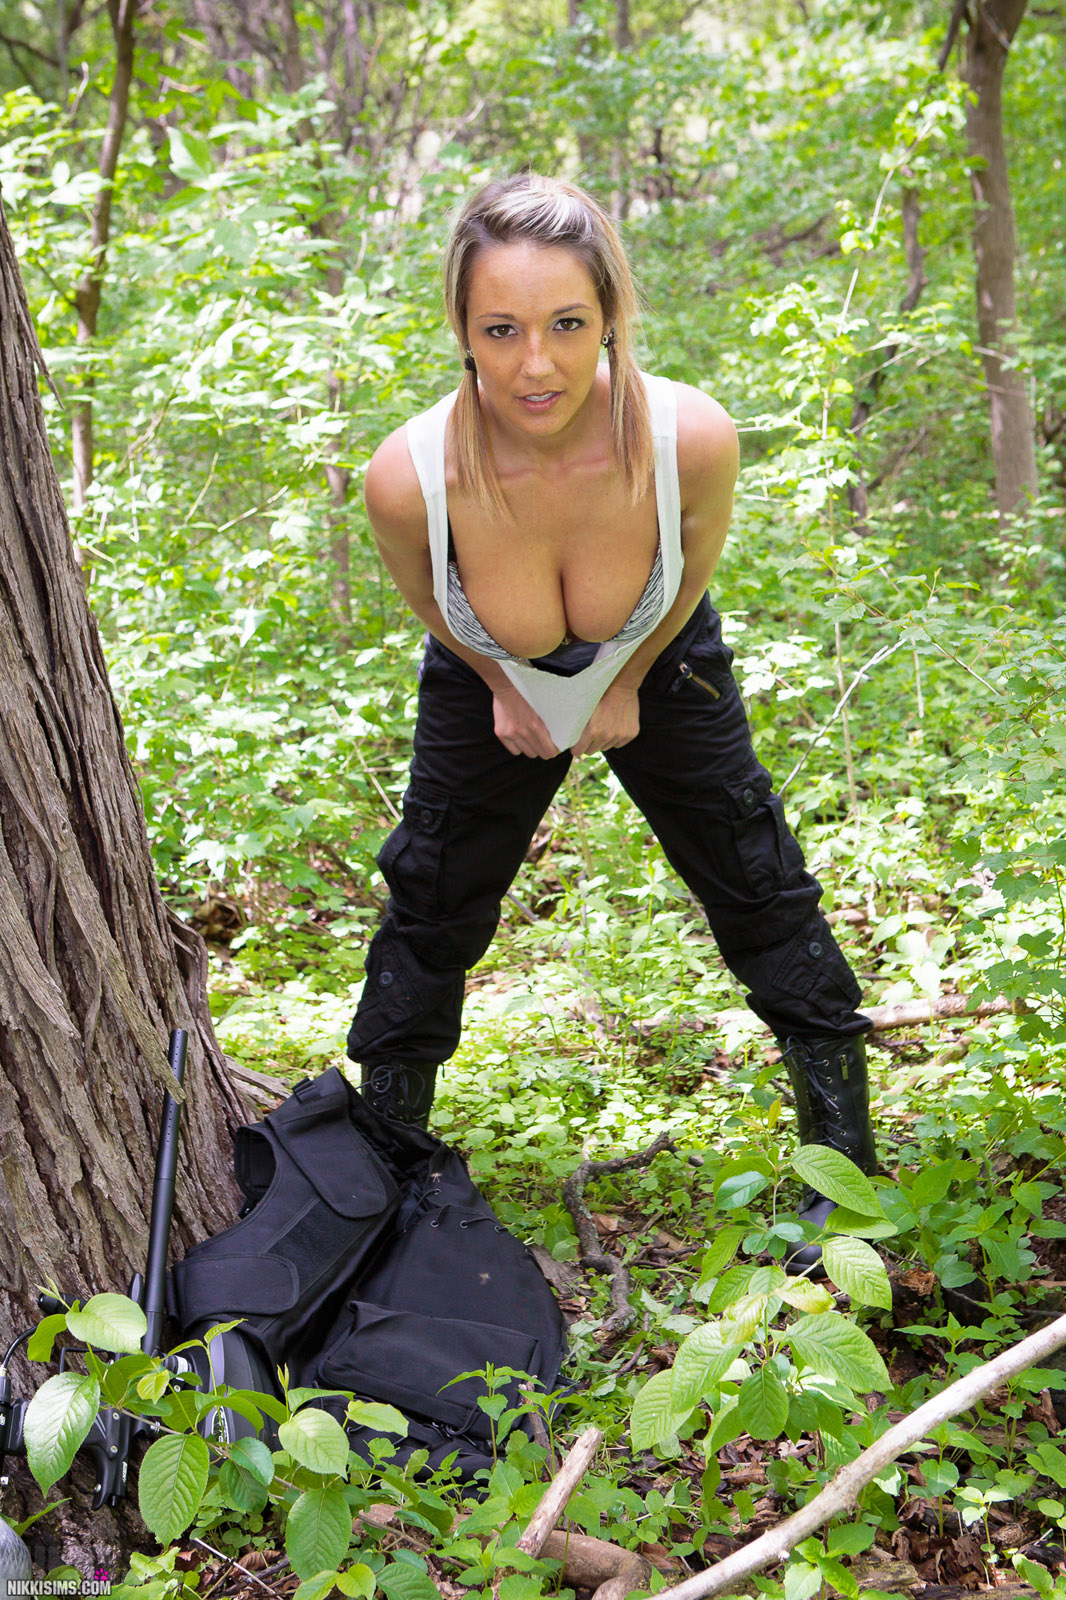 Can not nude women paintball